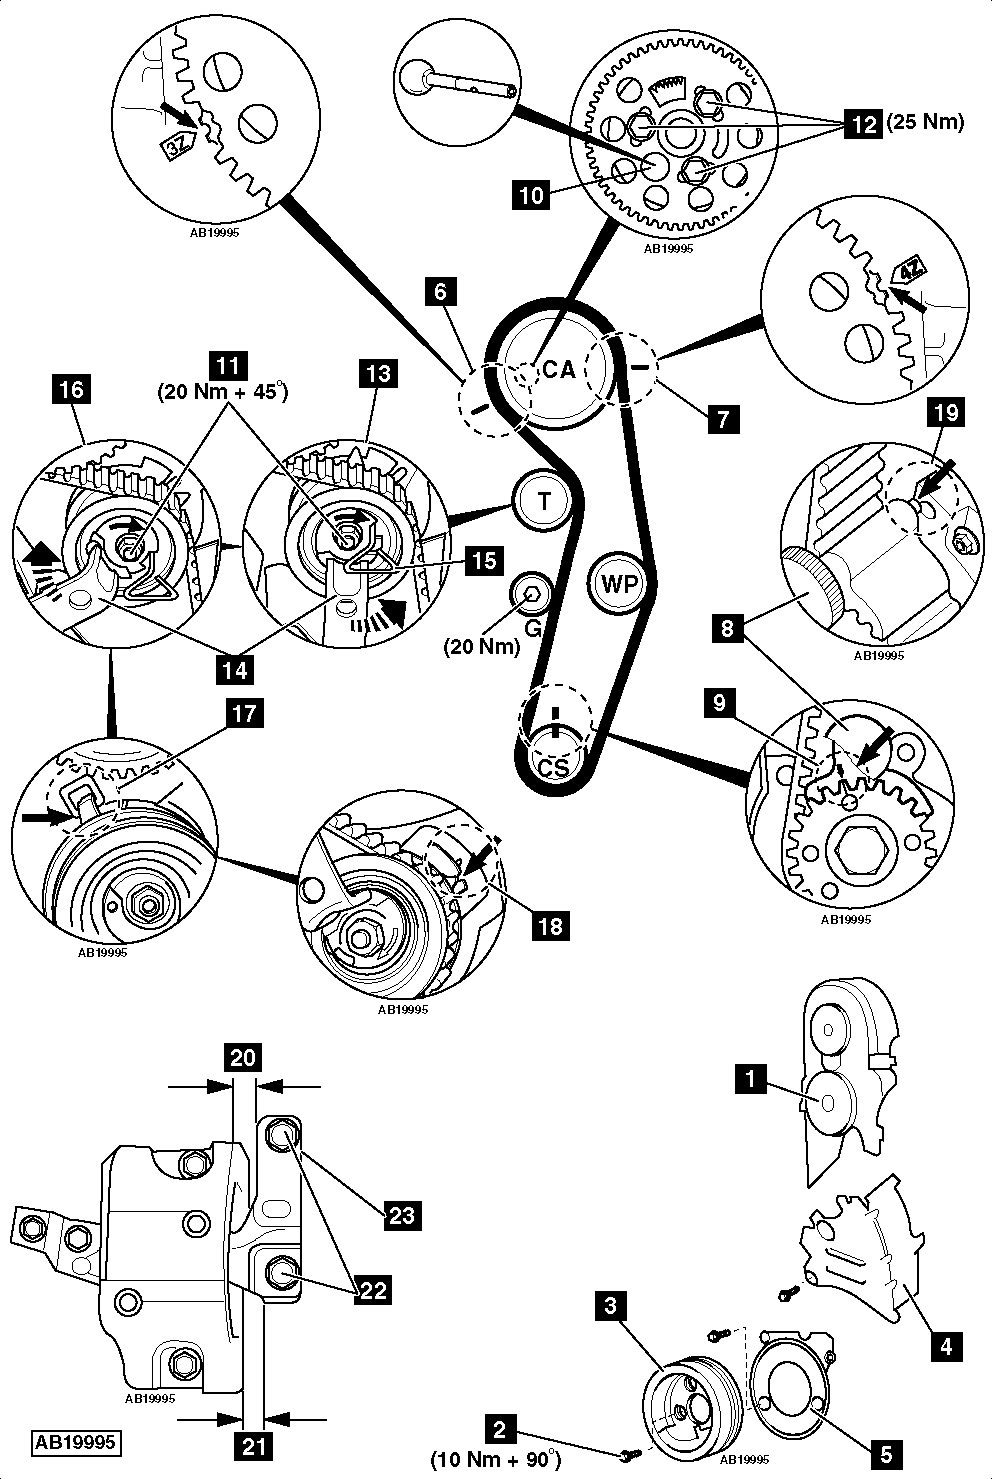 2005 Vw Jetta 2 5 Engine Diagram. Diagram. Auto Wiring Diagram